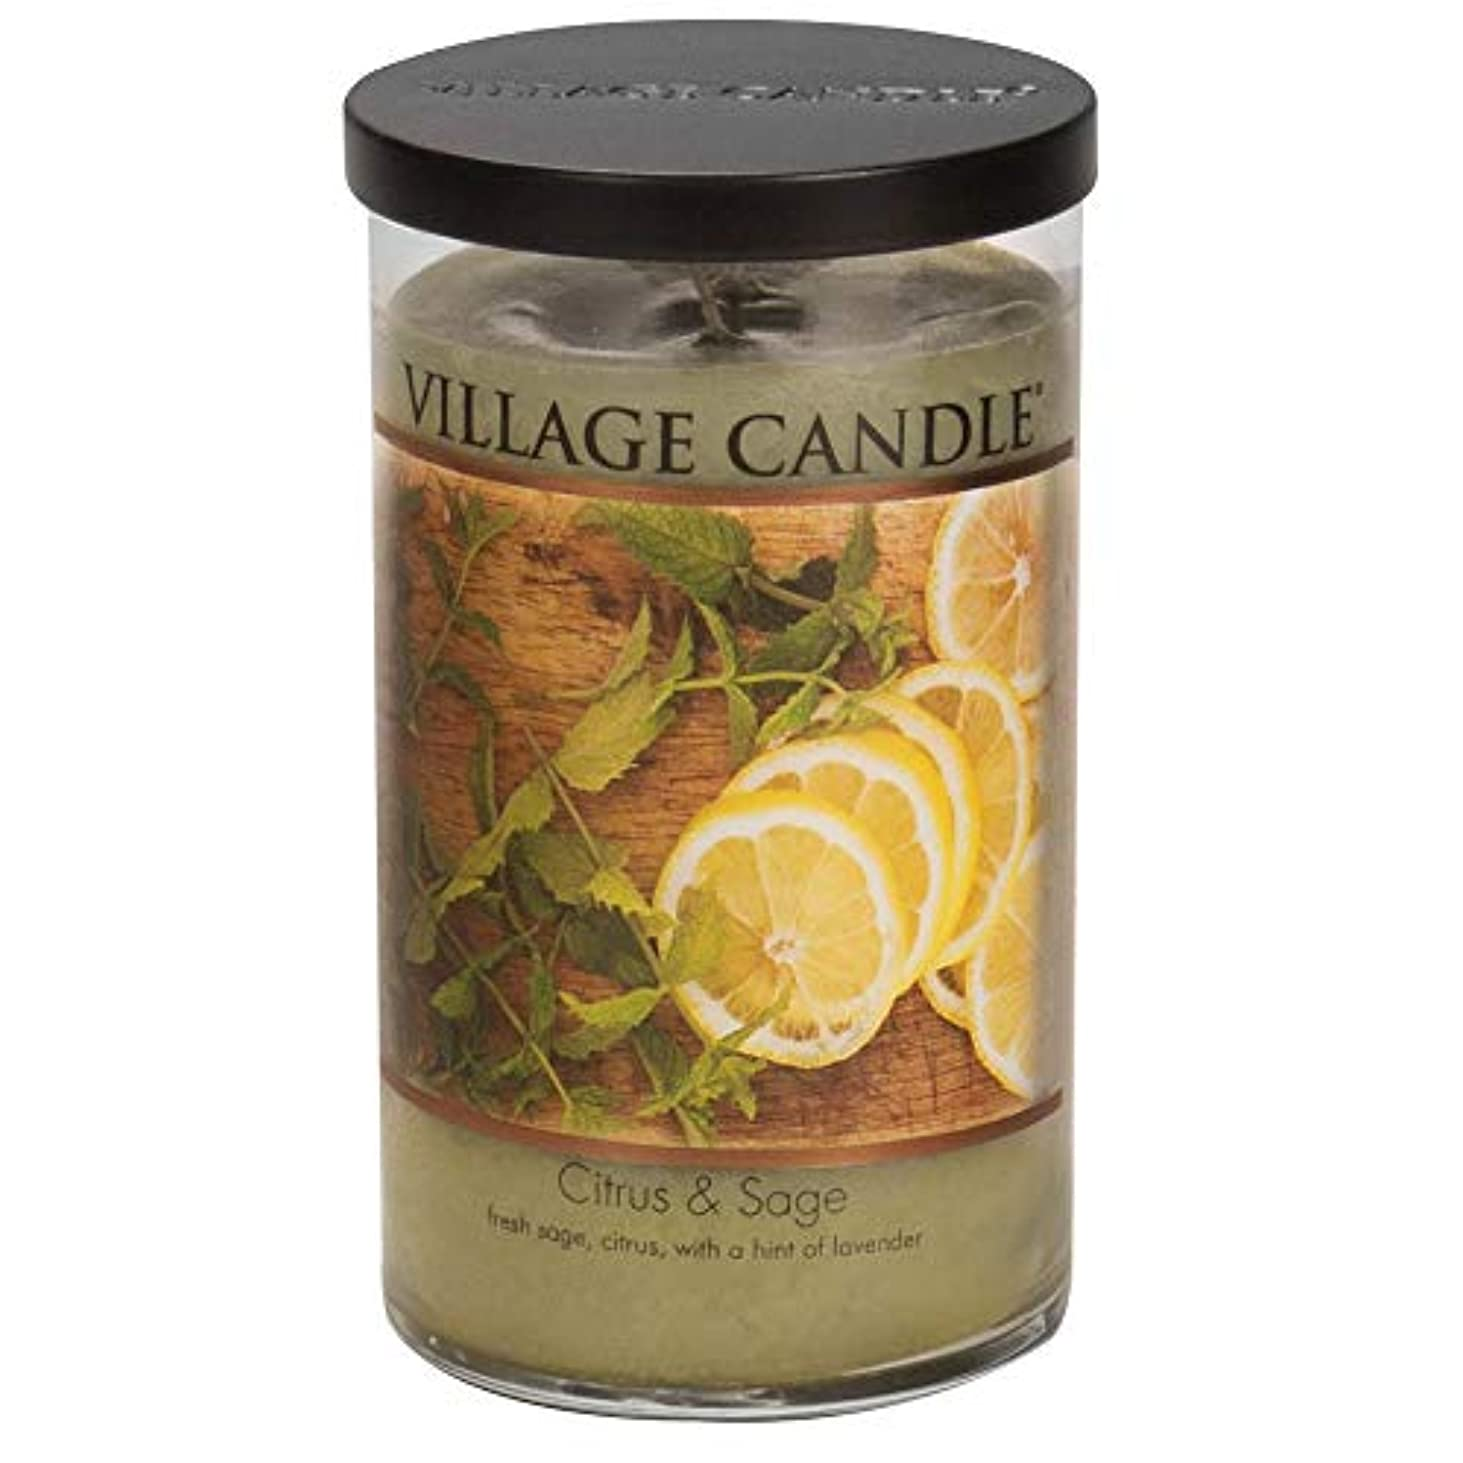 アイドルオプショナル脈拍Village Candle Citrus & Sage 24 Oz LargeタンブラーScented Candle